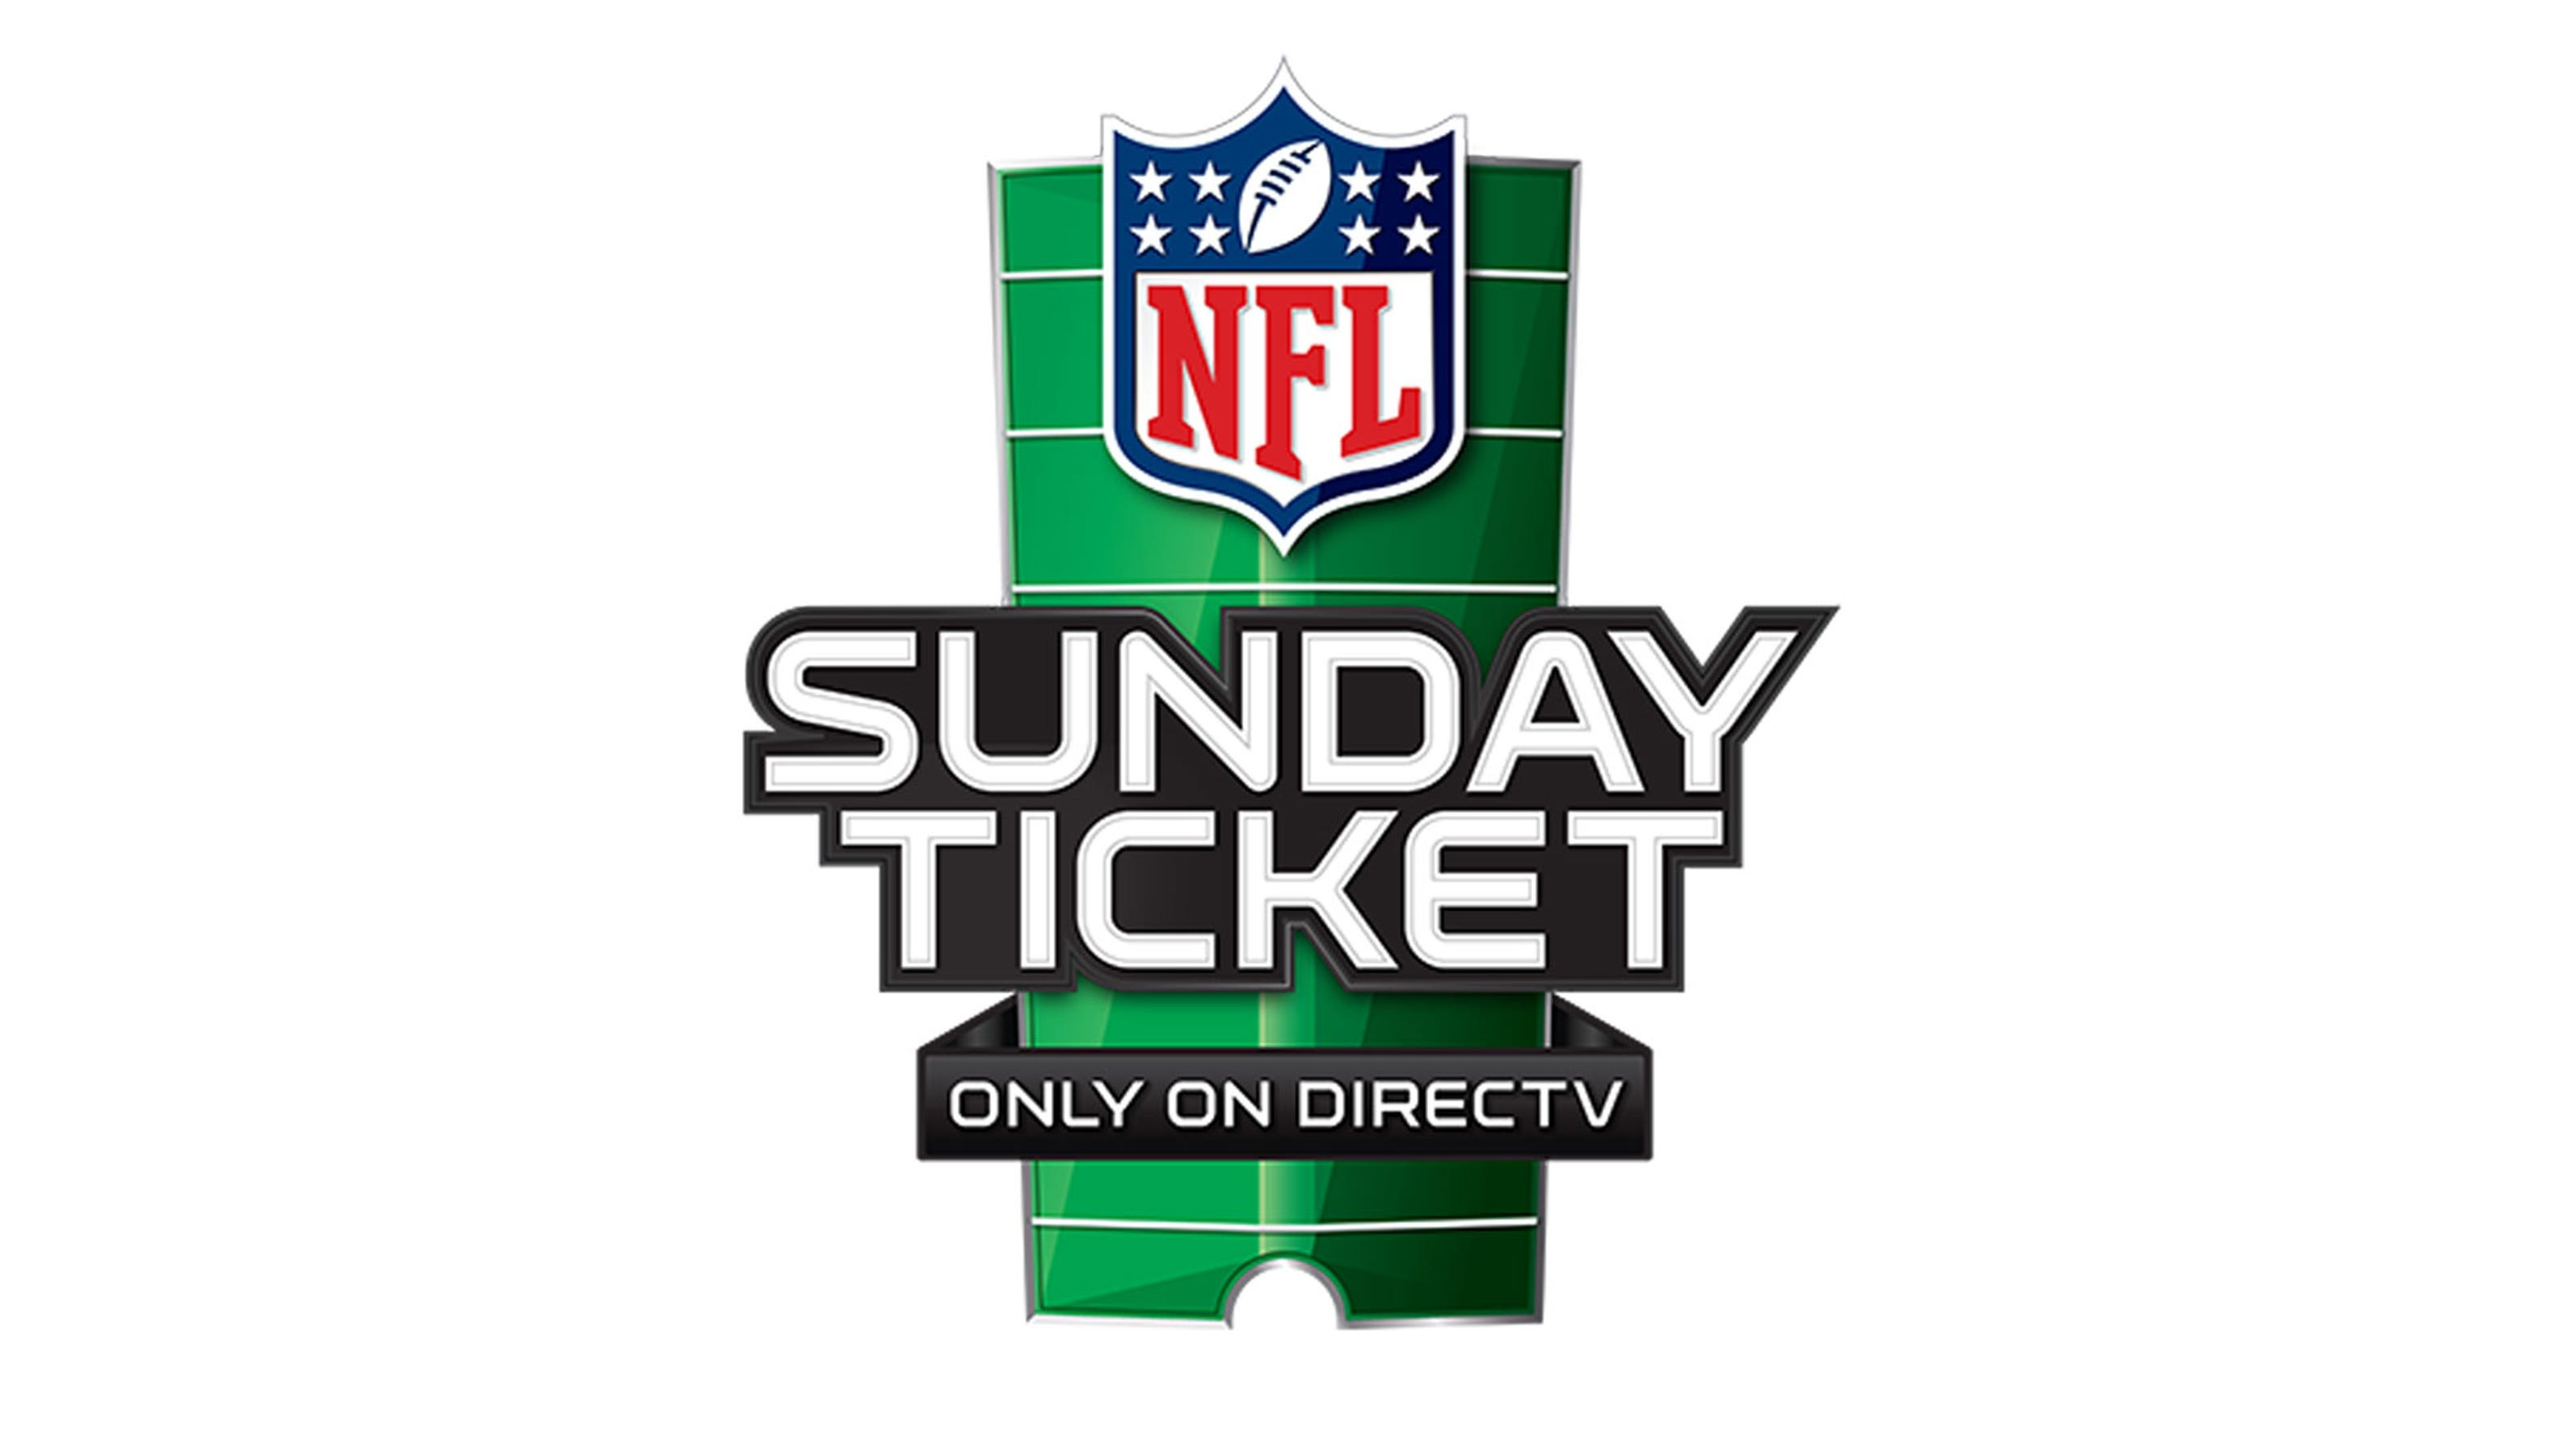 direct tv nfl schedule thanksgiving